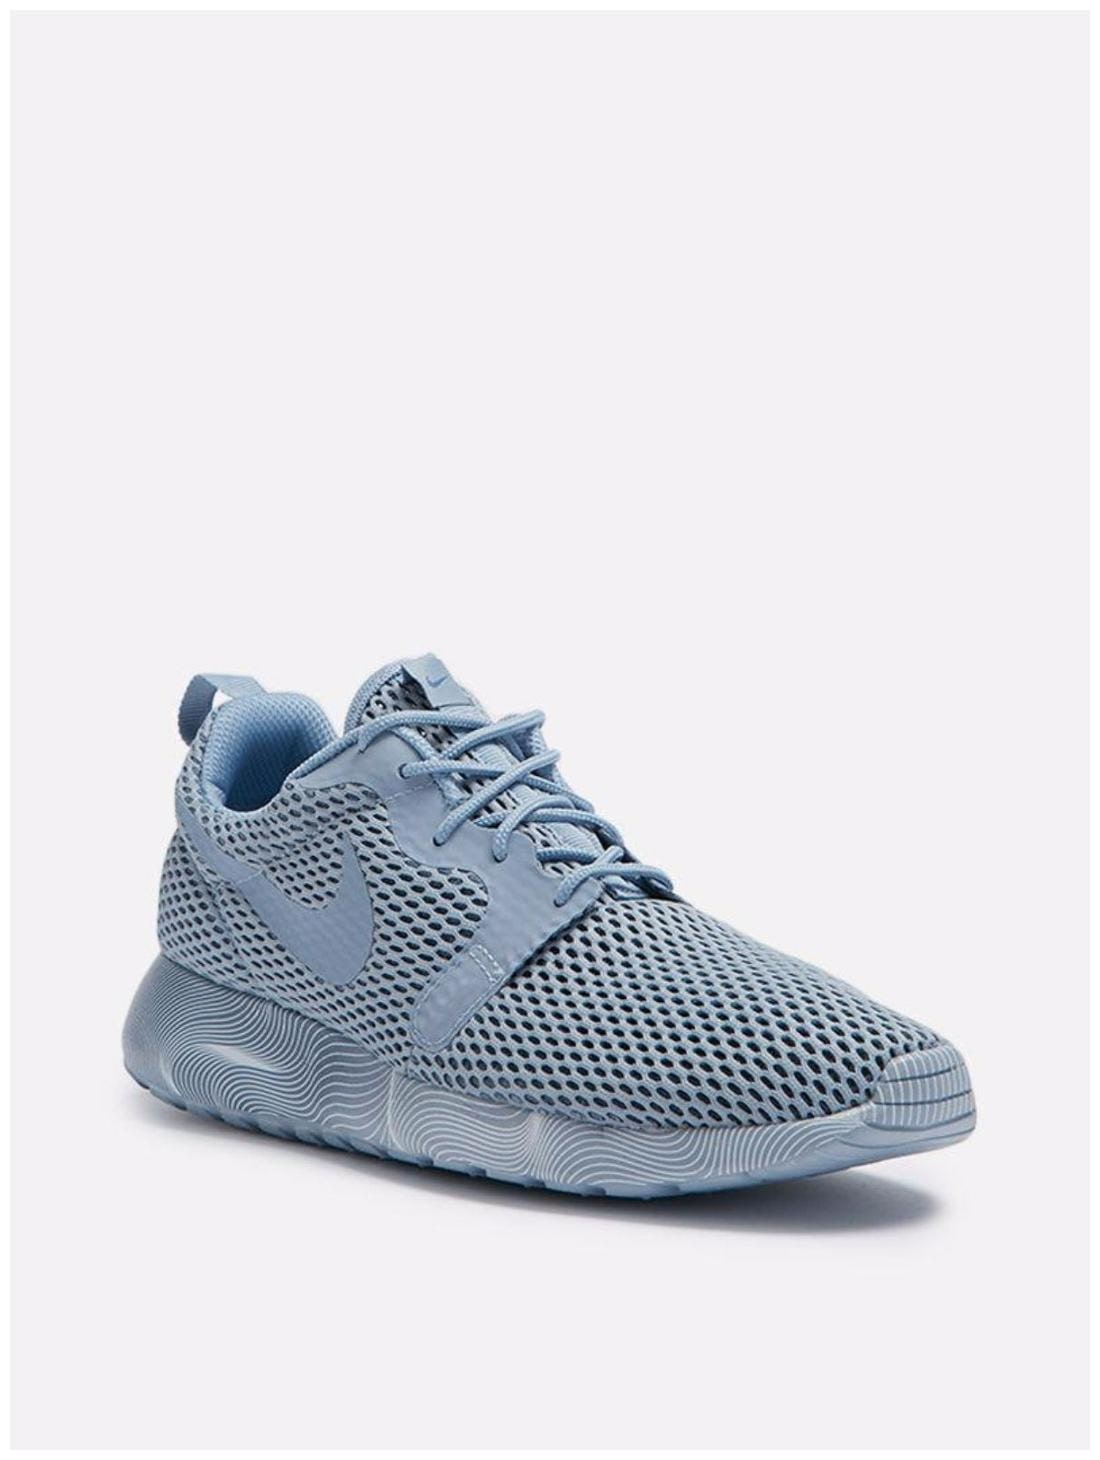 1f0d60fa6e68 Buy Nike Women s Roshe One HYP BR Grey Running Shoes Online at Low Prices  in India - Paytmmall.com